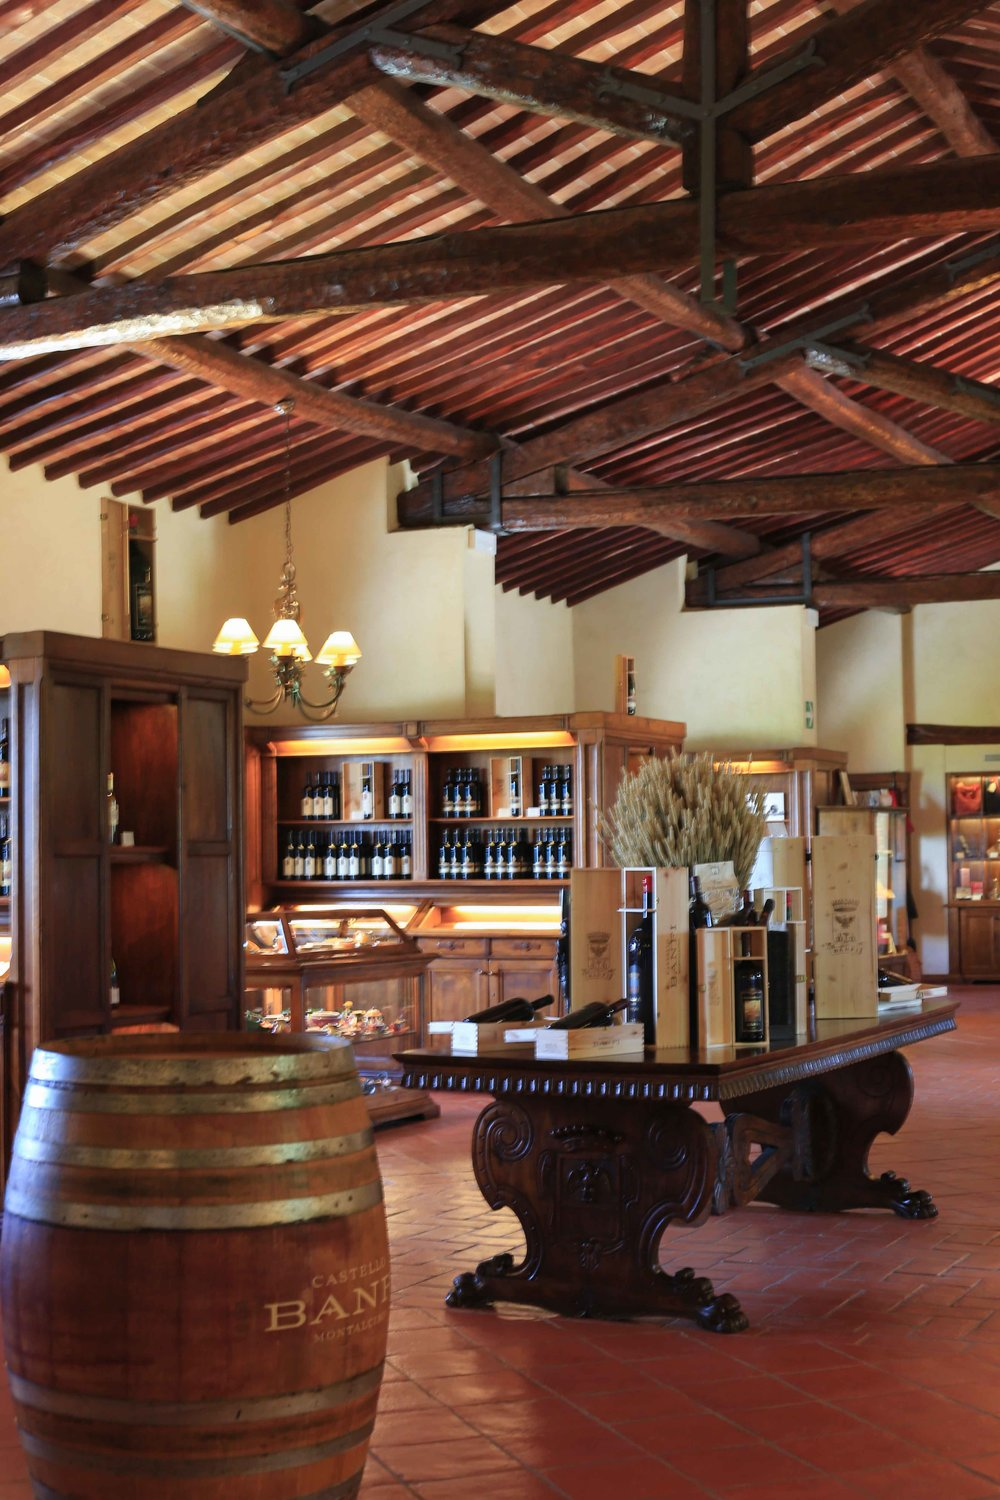 The shop at Castello di Banfi has so many wonderful wines, olive oils, pottery and much more to bring home!